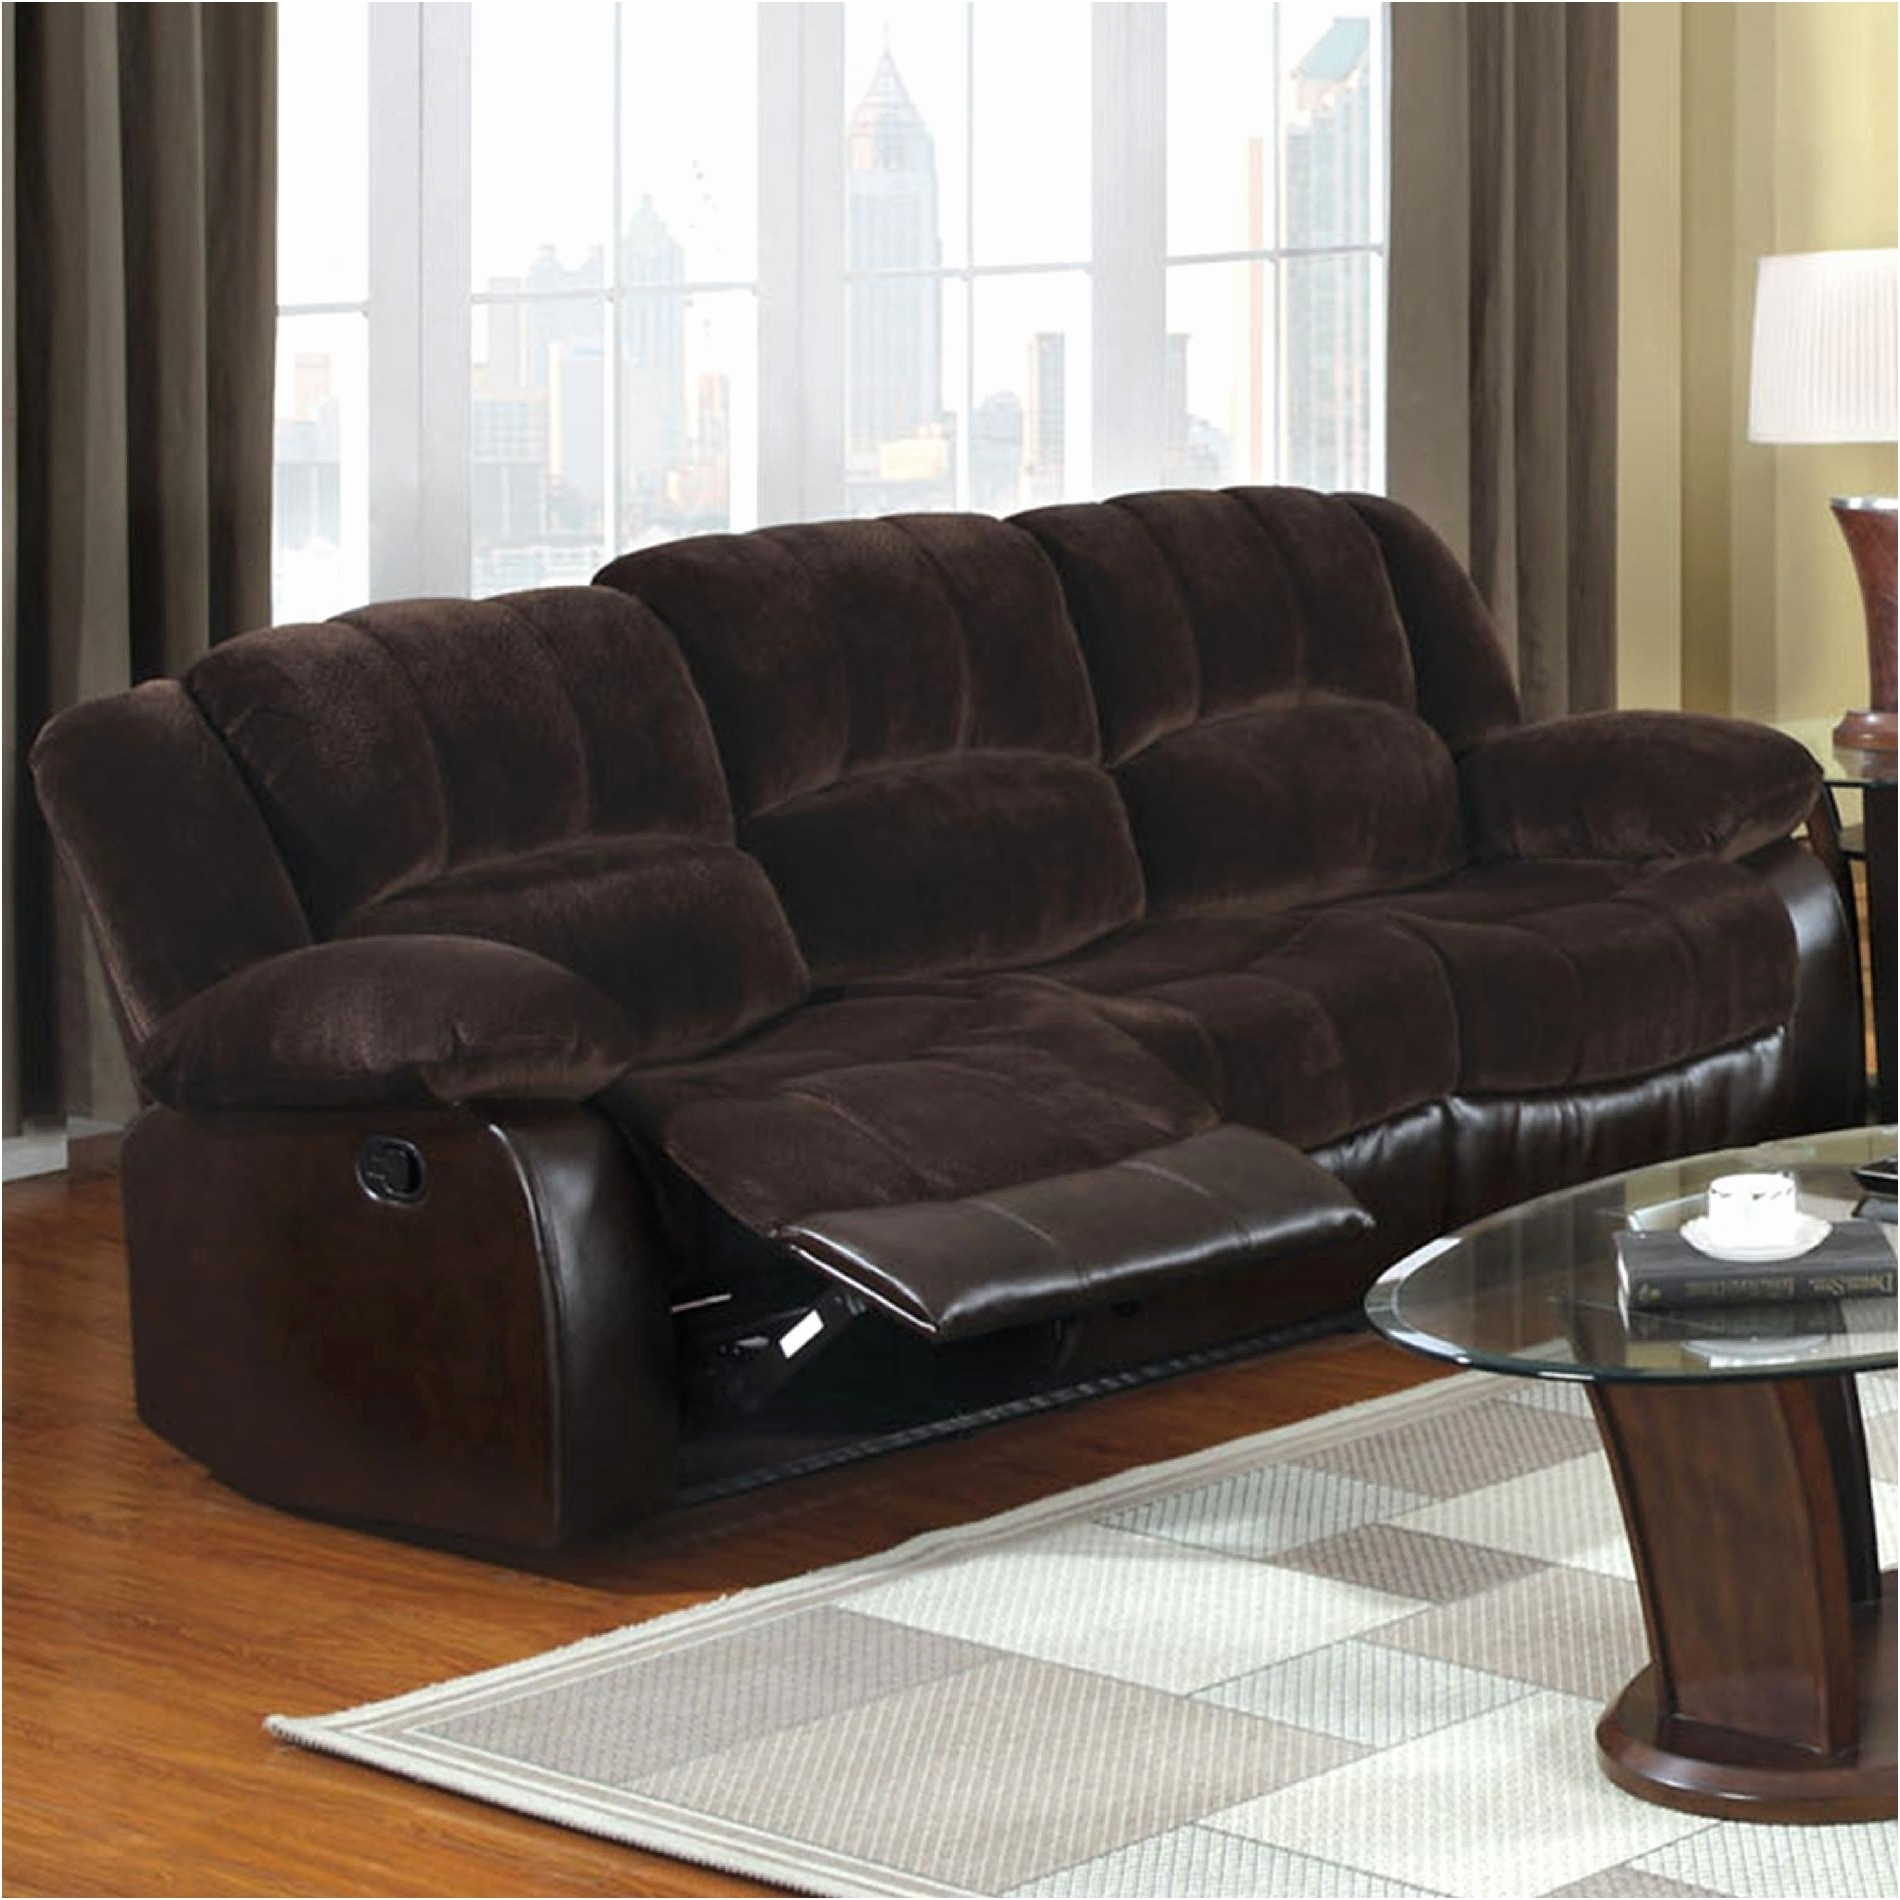 2019 Latest Sectional Sofas At Sears